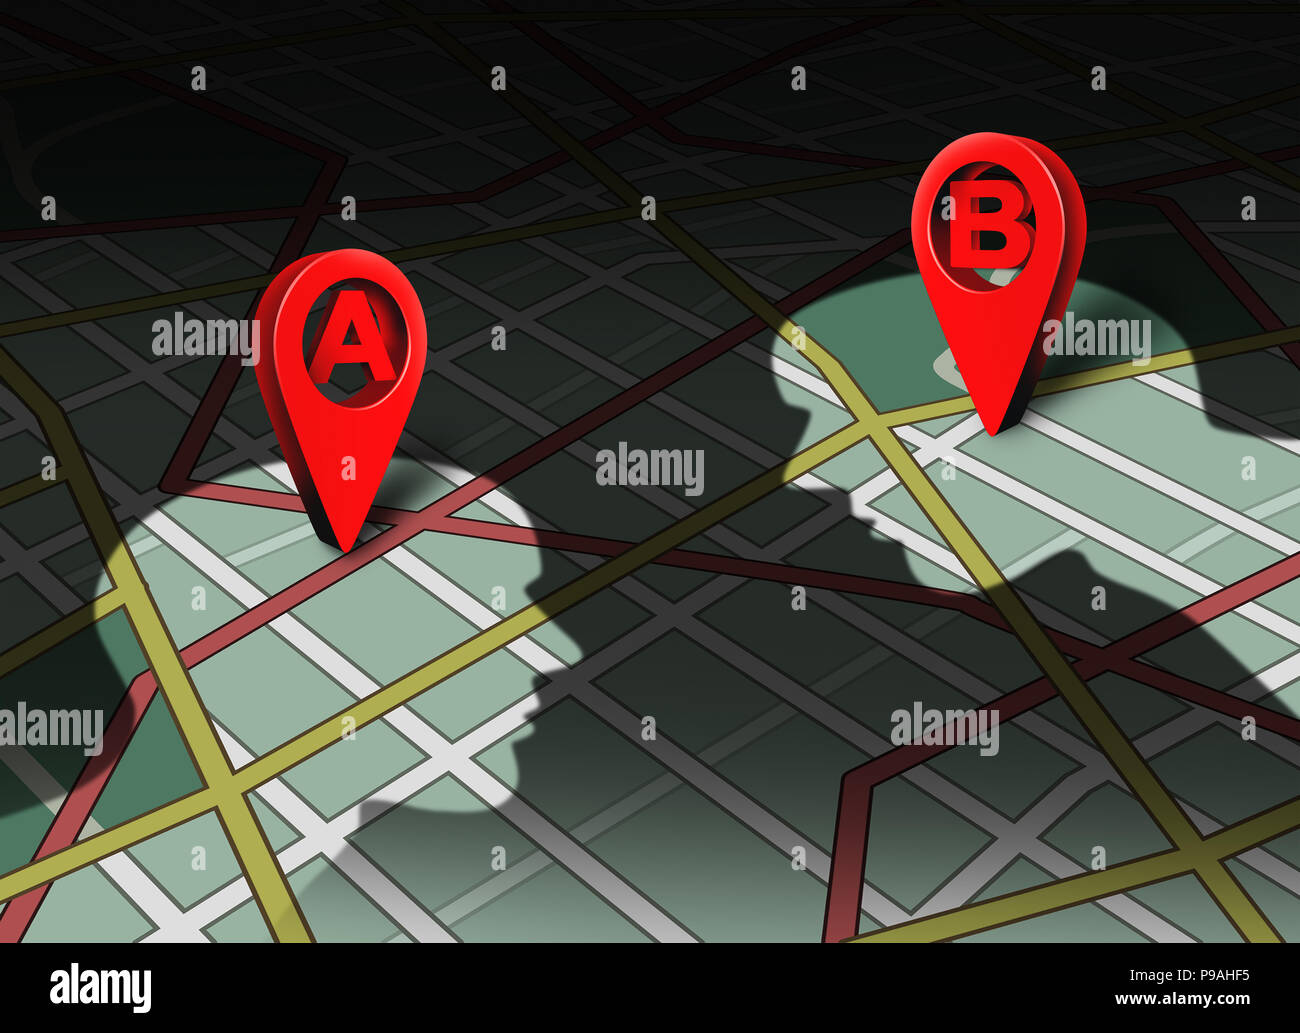 Point a to b concept location roadmap and gps navigator pin human business connection destination challenge as a corporate communication metaphor idea - Stock Image